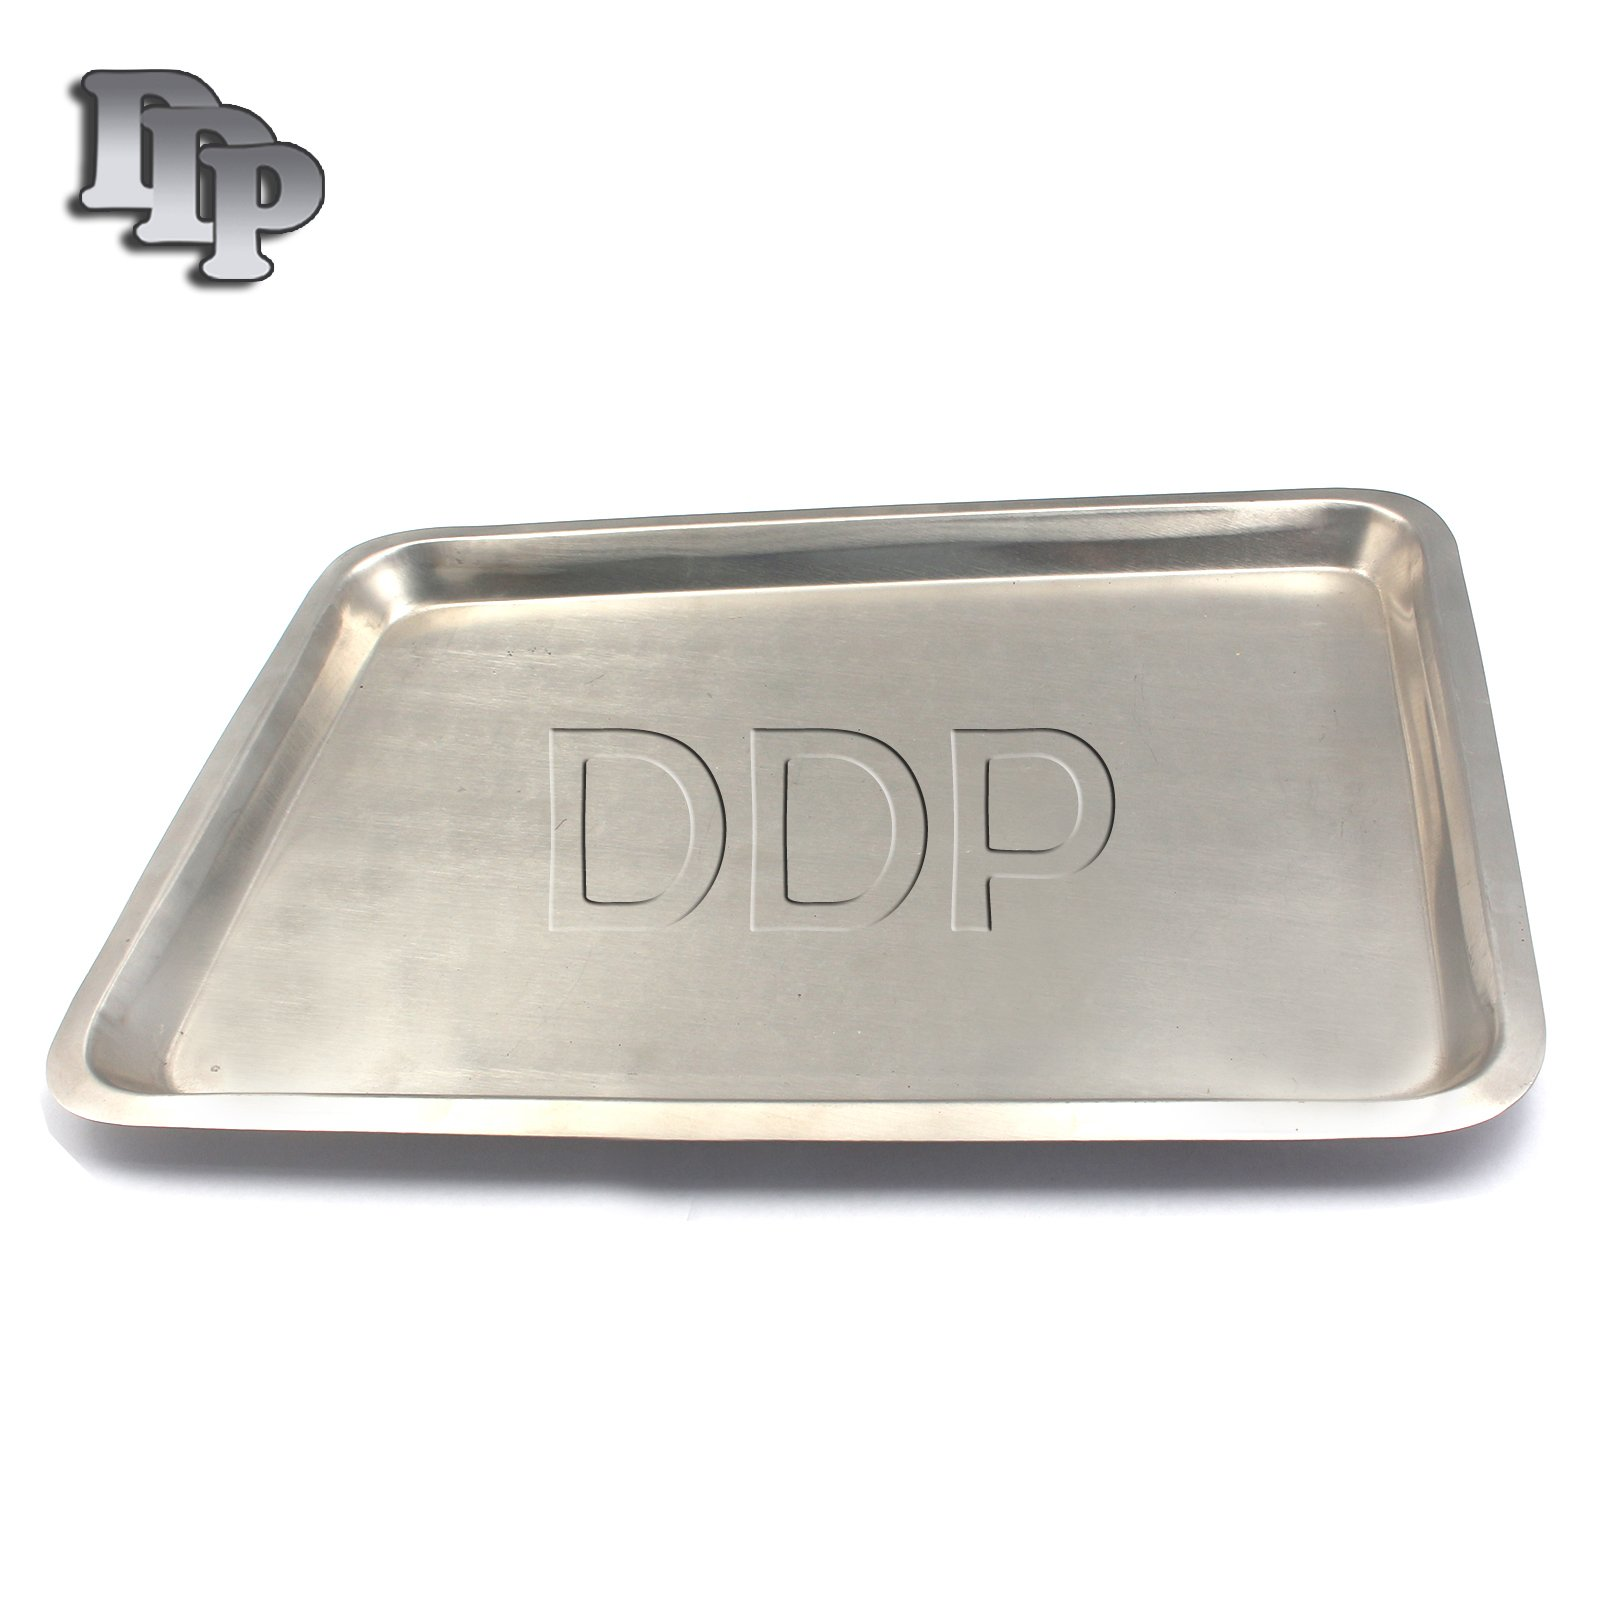 DDP INSTRUMENT TRAY FLAT STAINLESS STEEL 15'' X 10.5'' MEDIC, BODY PIERCING, SERVING by DDP